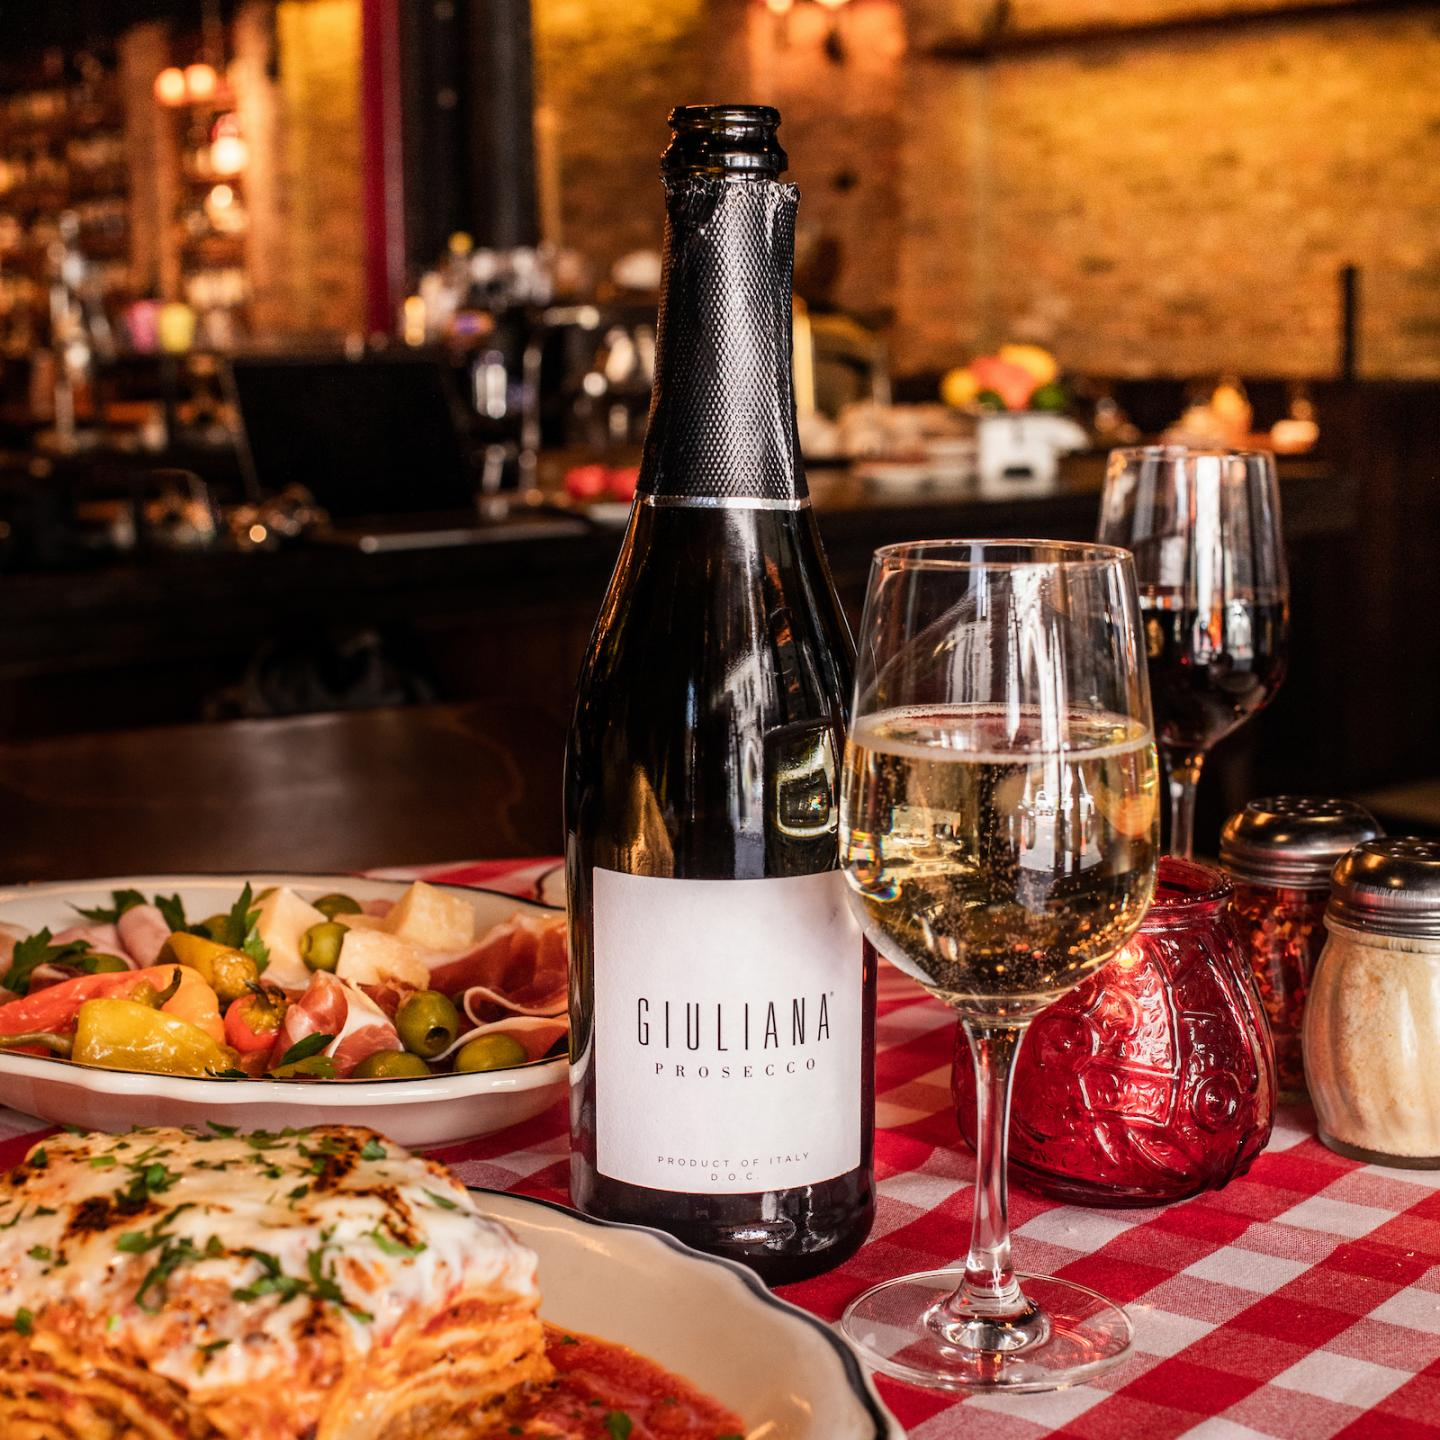 bottle of Giuliana Prosecco and glass of wine with food on the table at il Porcellino